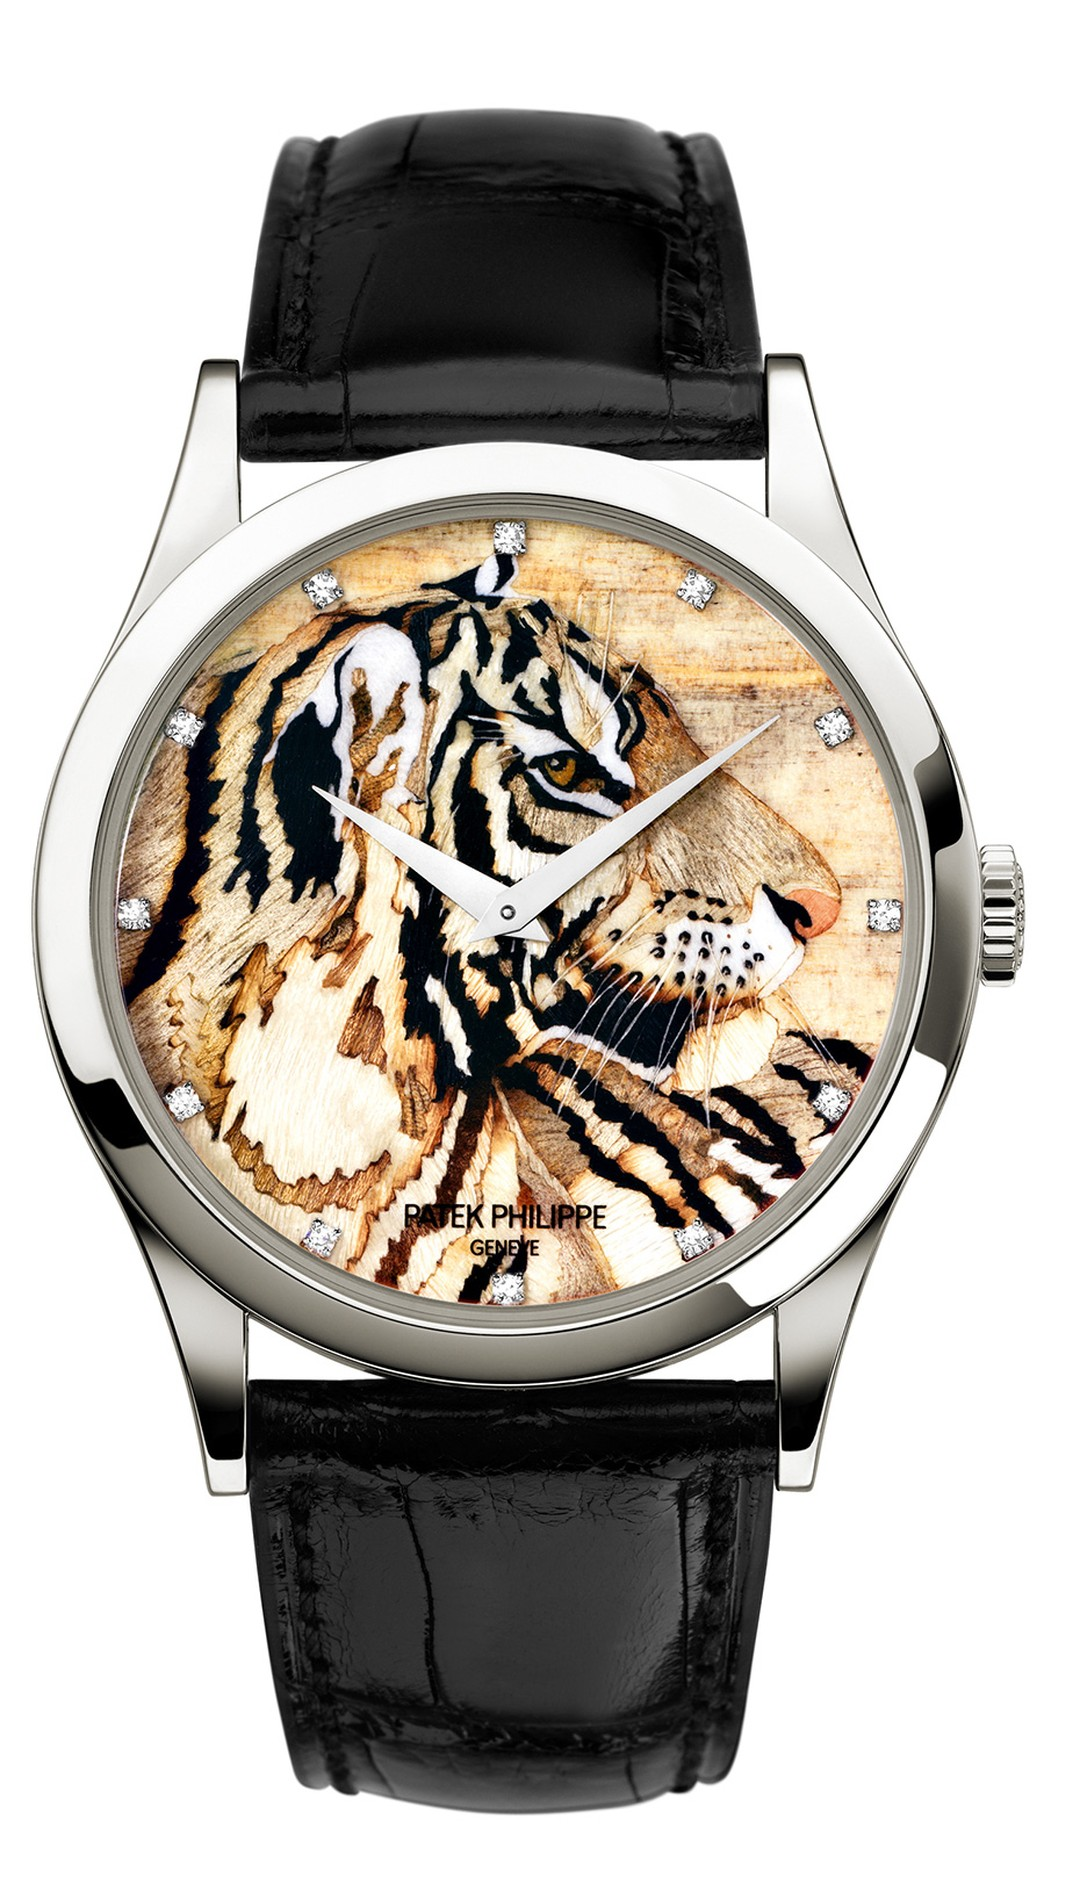 Patek Philippe Royal Tigers Calatrava watch Ref. 5077P, decorated with a tiger's head in wood marquetry, requiring 50 hours of work by a master marquetarian.